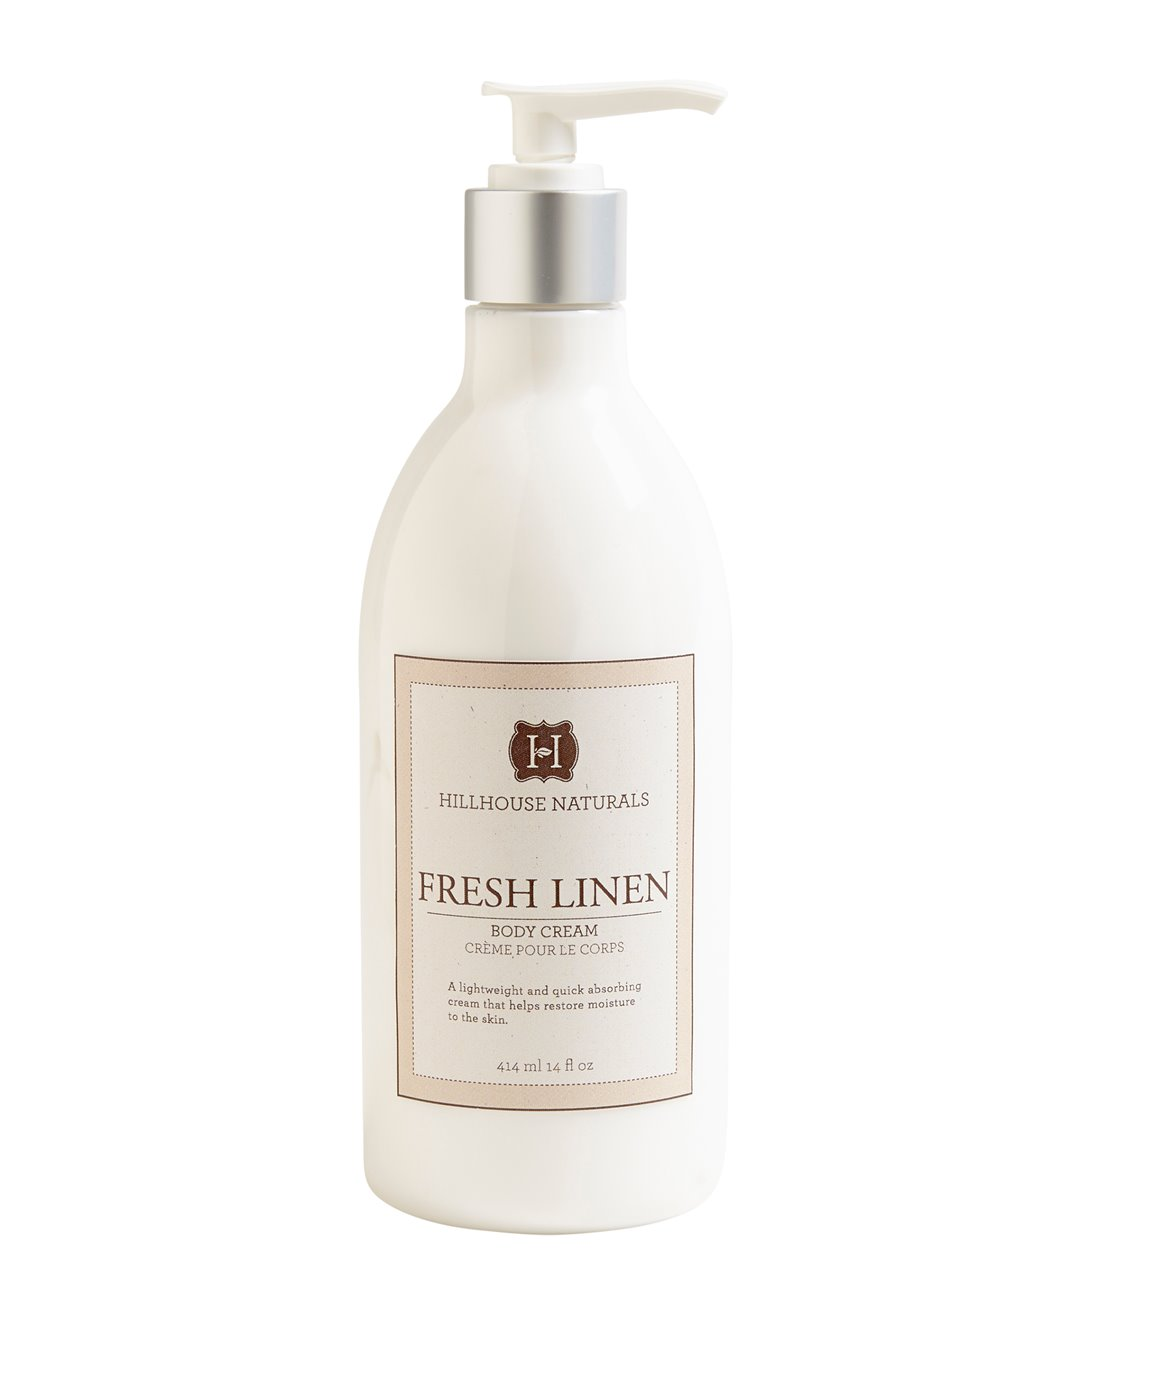 Fresh Linen Body Creme 14 oz by Hillhouse Naturals